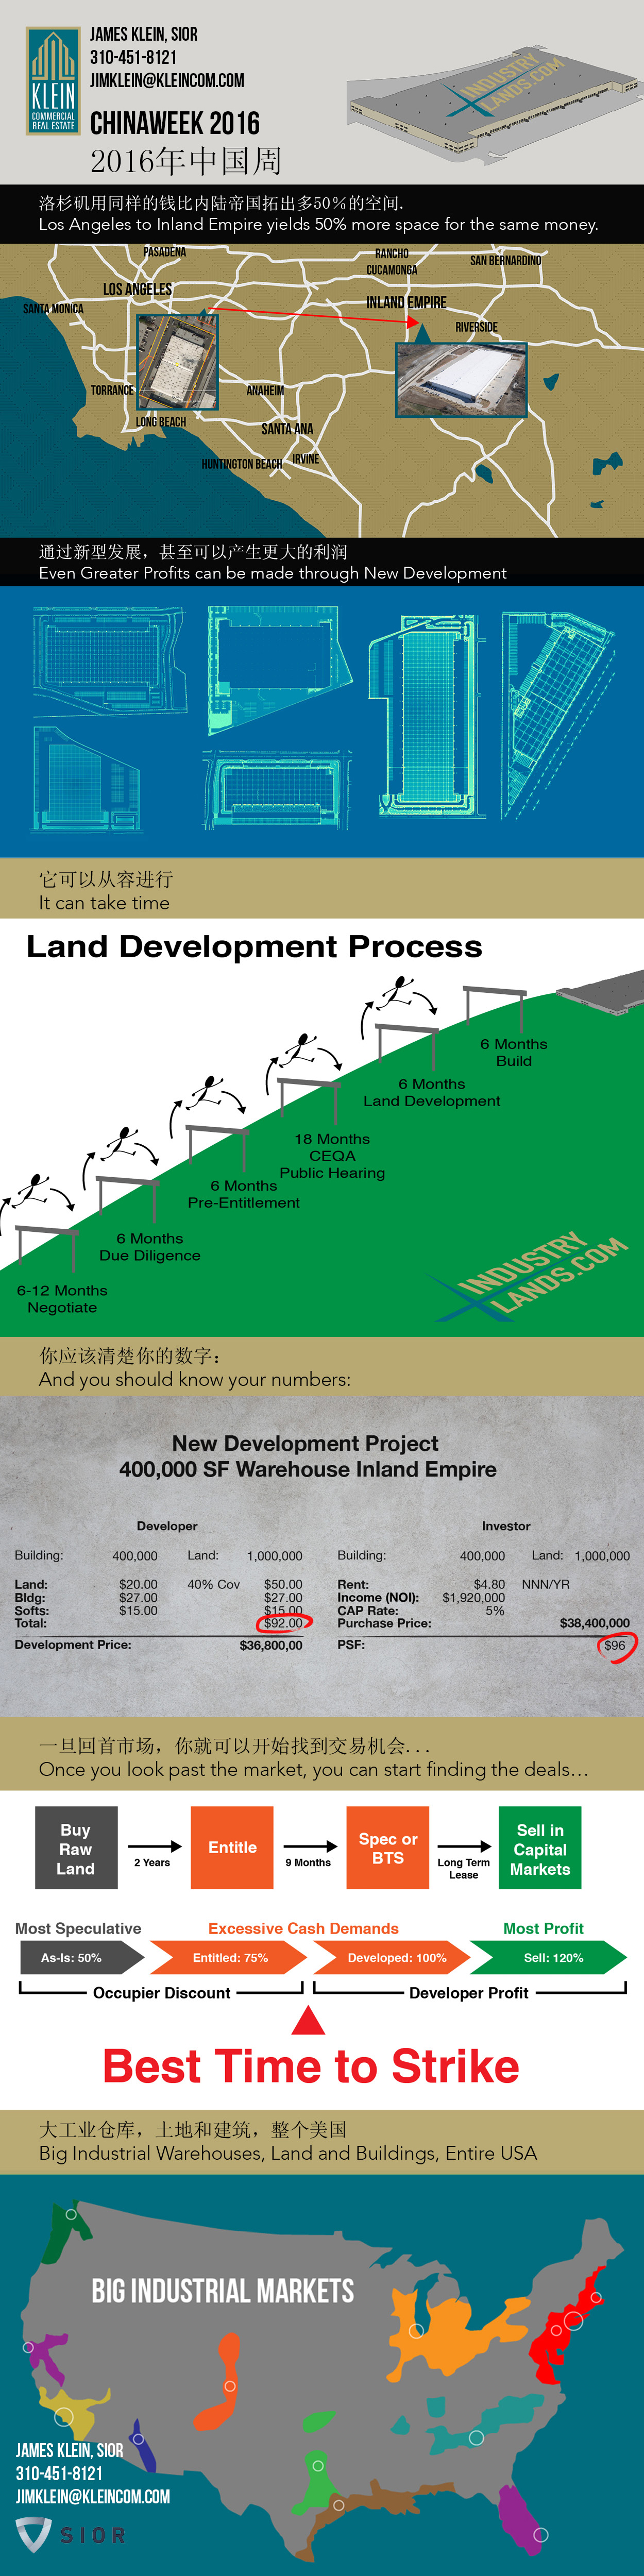 land sellers flier april 2016 china week long image